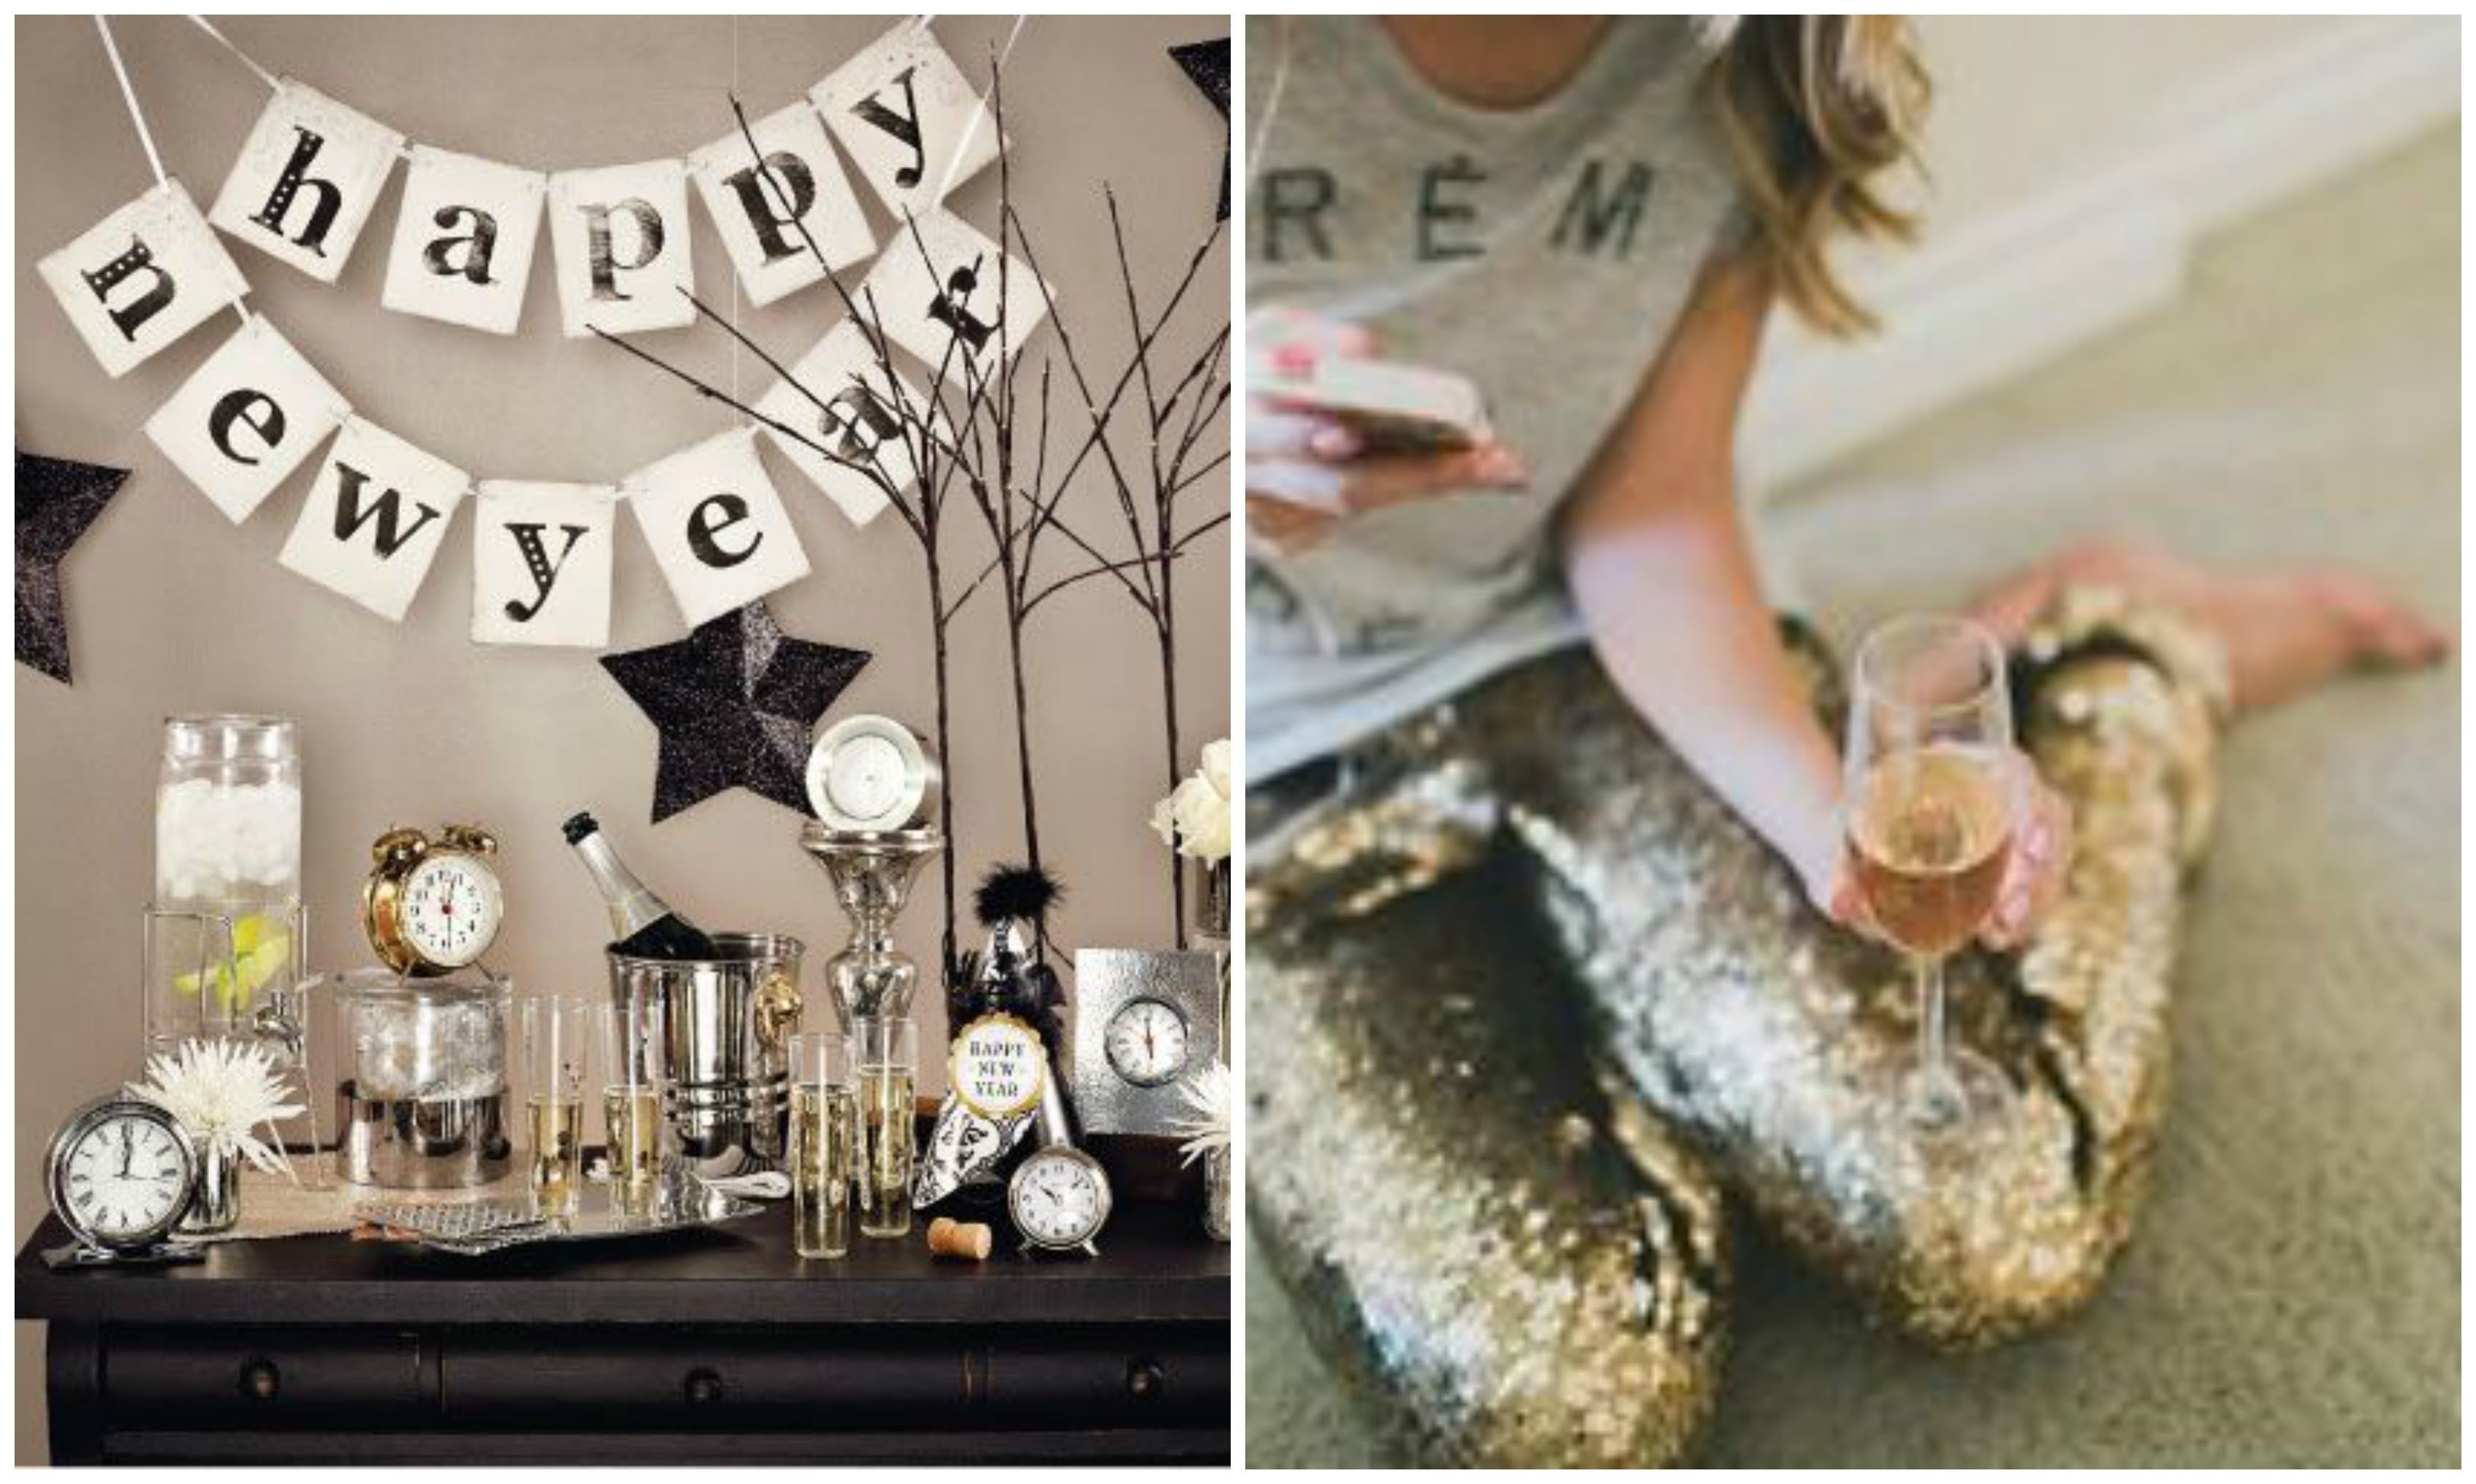 10 Most Recommended Ideas For New Years Eve Party new years eve party ideas youtube 2 2020